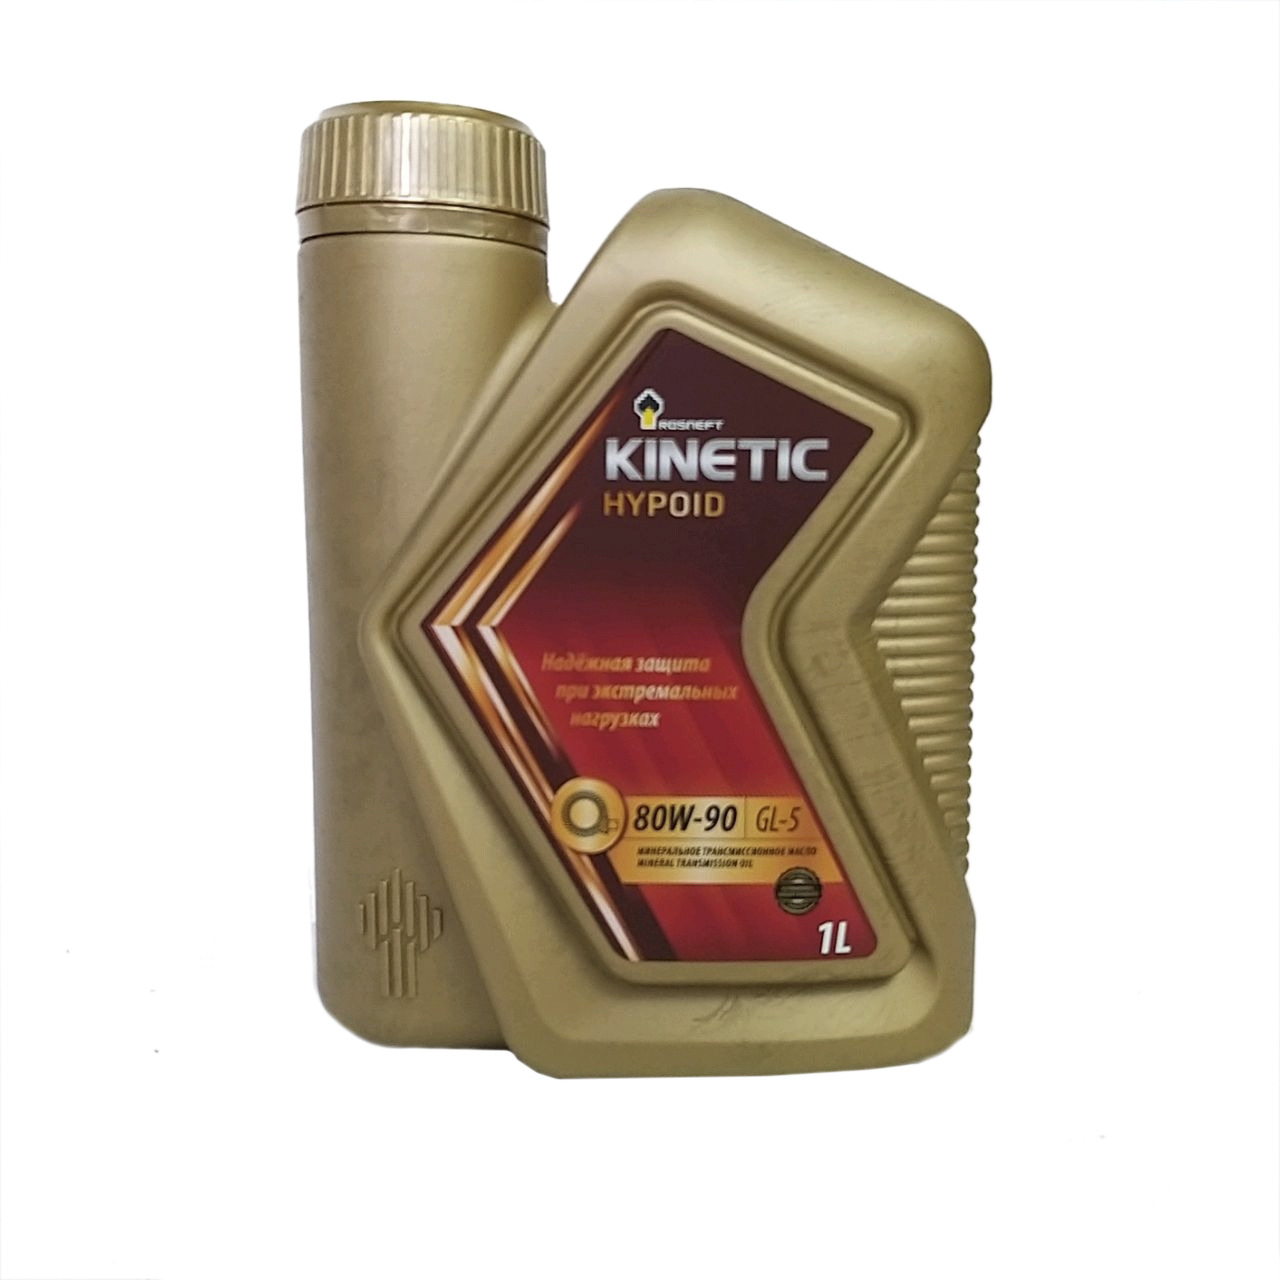 Rosneft Kinetic Hypoid 80w-90 (GL-5) 1L